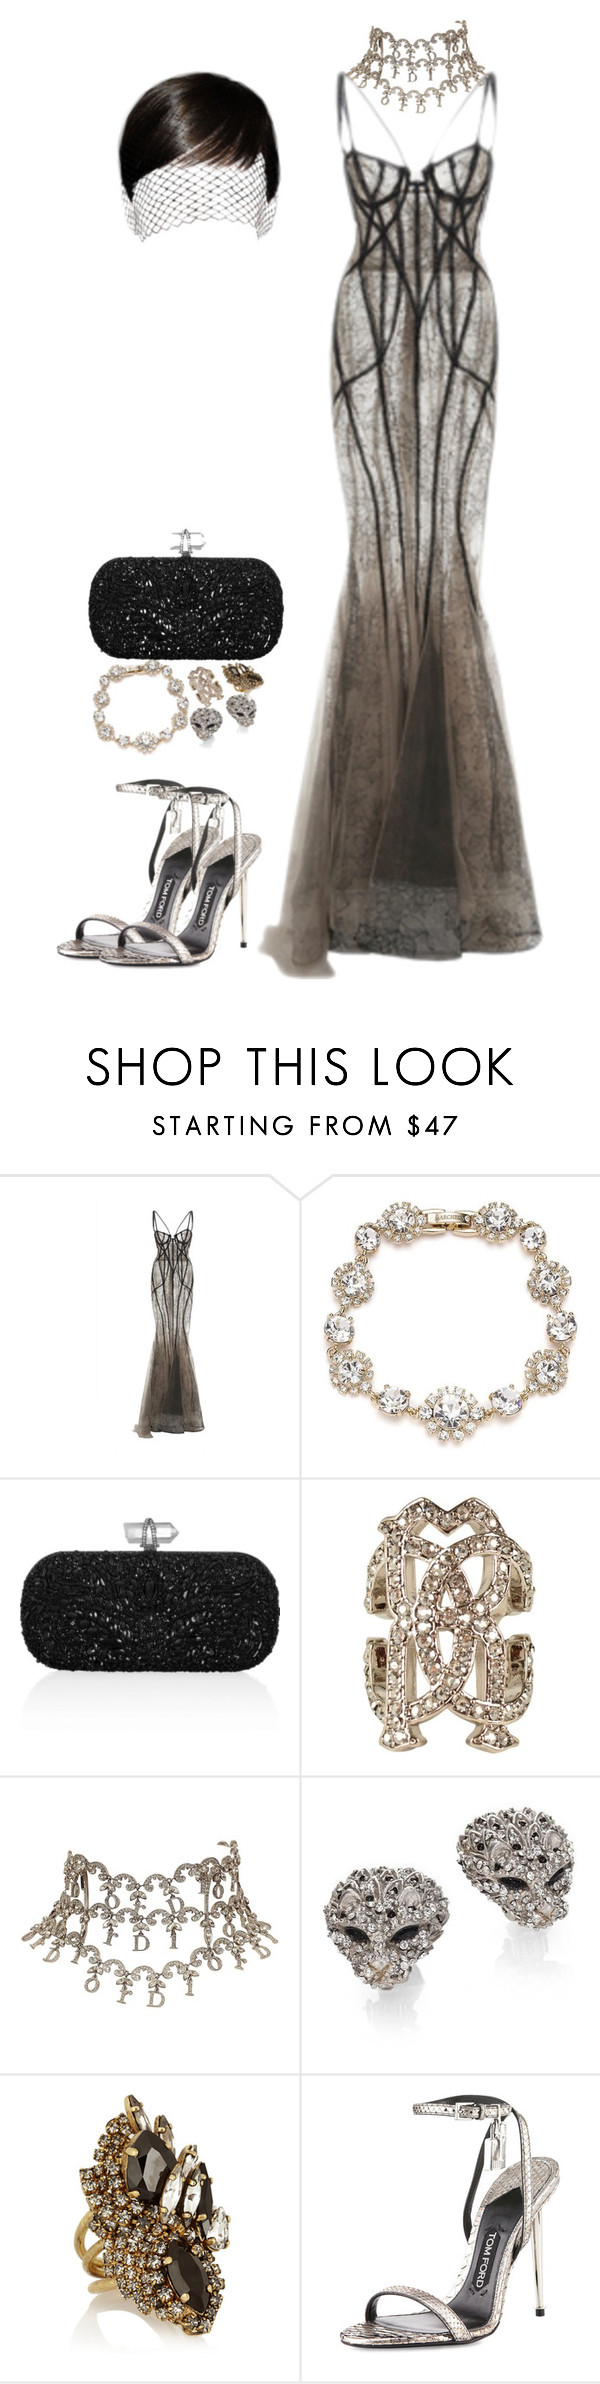 """Mother Dearest."" by ayooniesex3 ❤ liked on Polyvore featuring Marchesa, Roberto Cavalli, Christian Dior, Yves Saint Laurent, Erickson Beamon and Tom Ford"